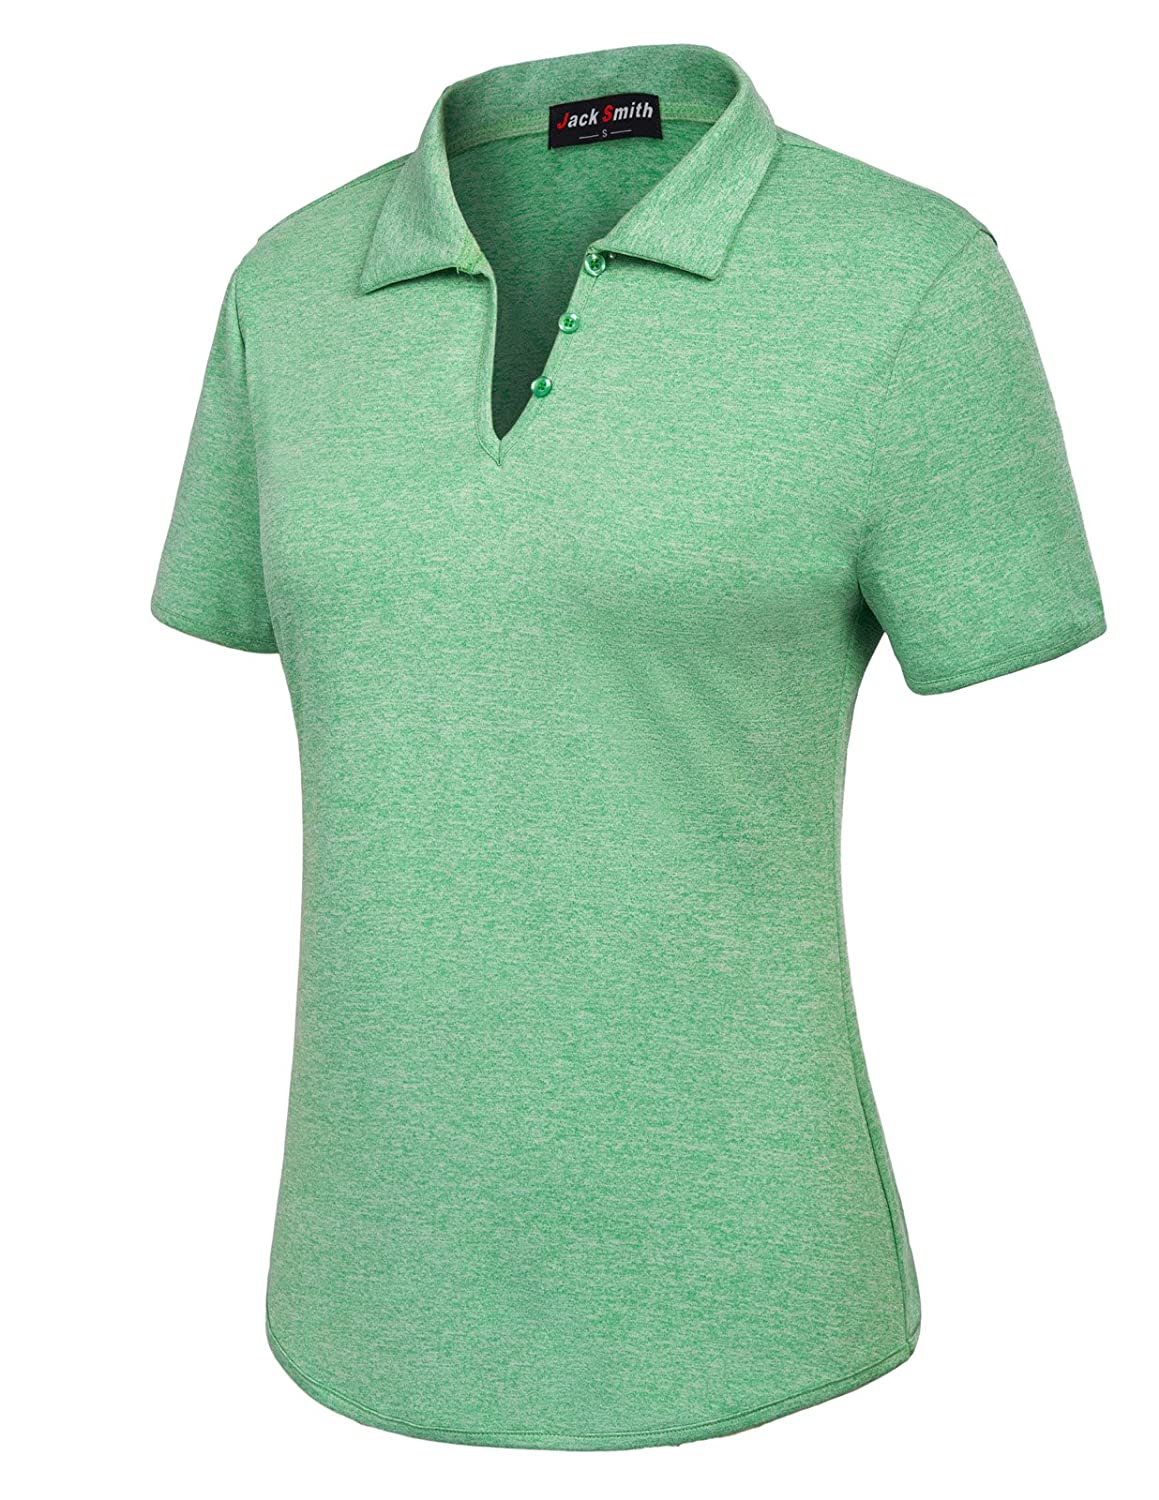 Jack Smith Polo Shirt Breathable Golf Polos For Women Xl Green At